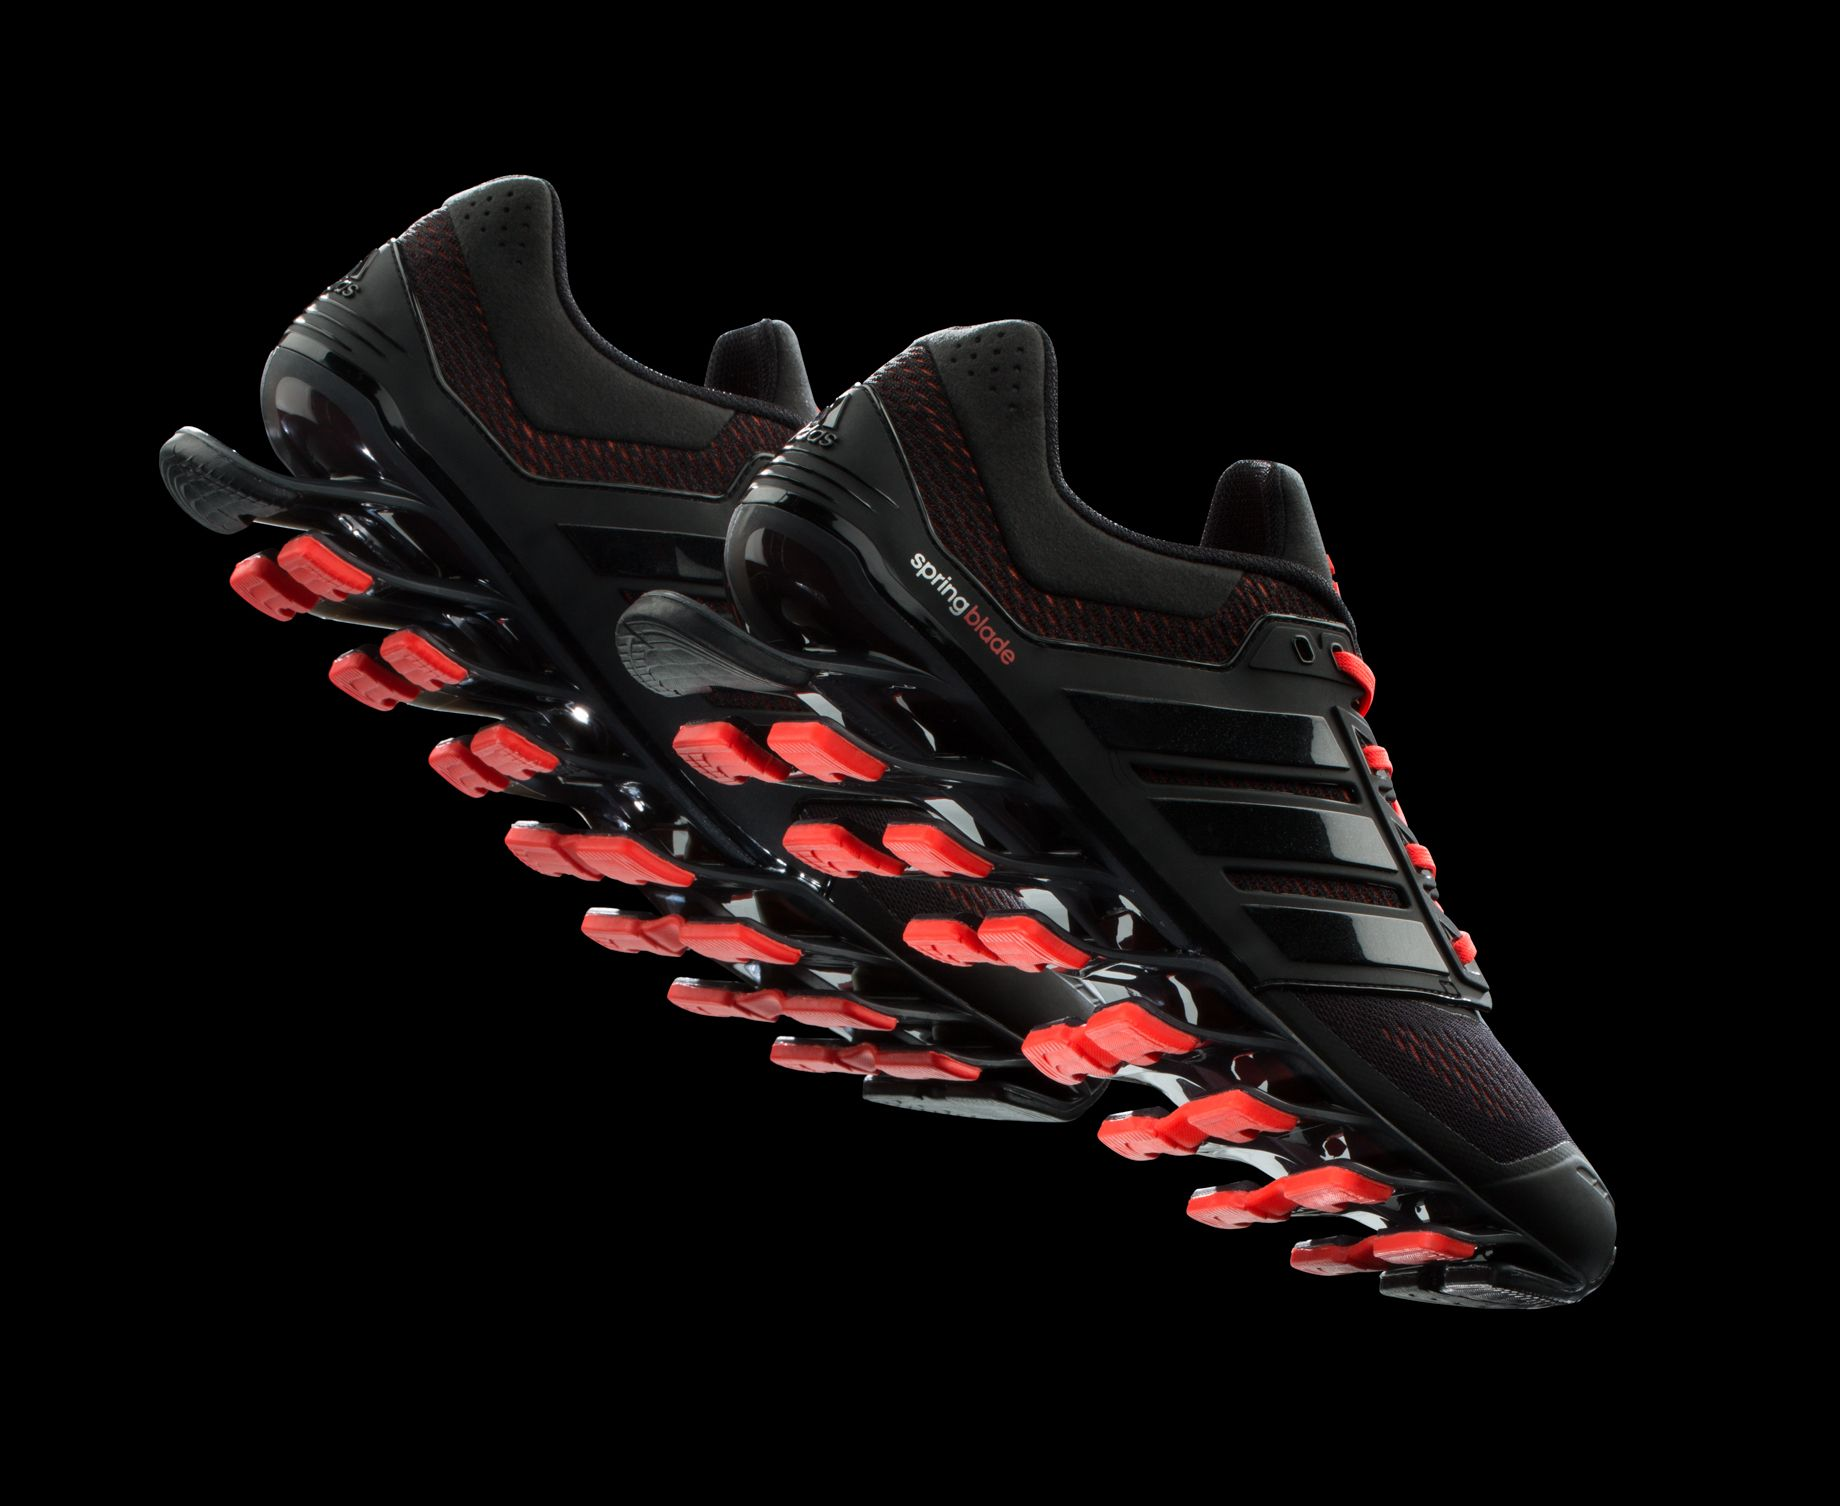 medio Opuesto impresión  ADIDAS SPRINGBLADE DRIVE running shoes BLACK RED C75665 | Adidas, Nike  shoes women, Black running shoes